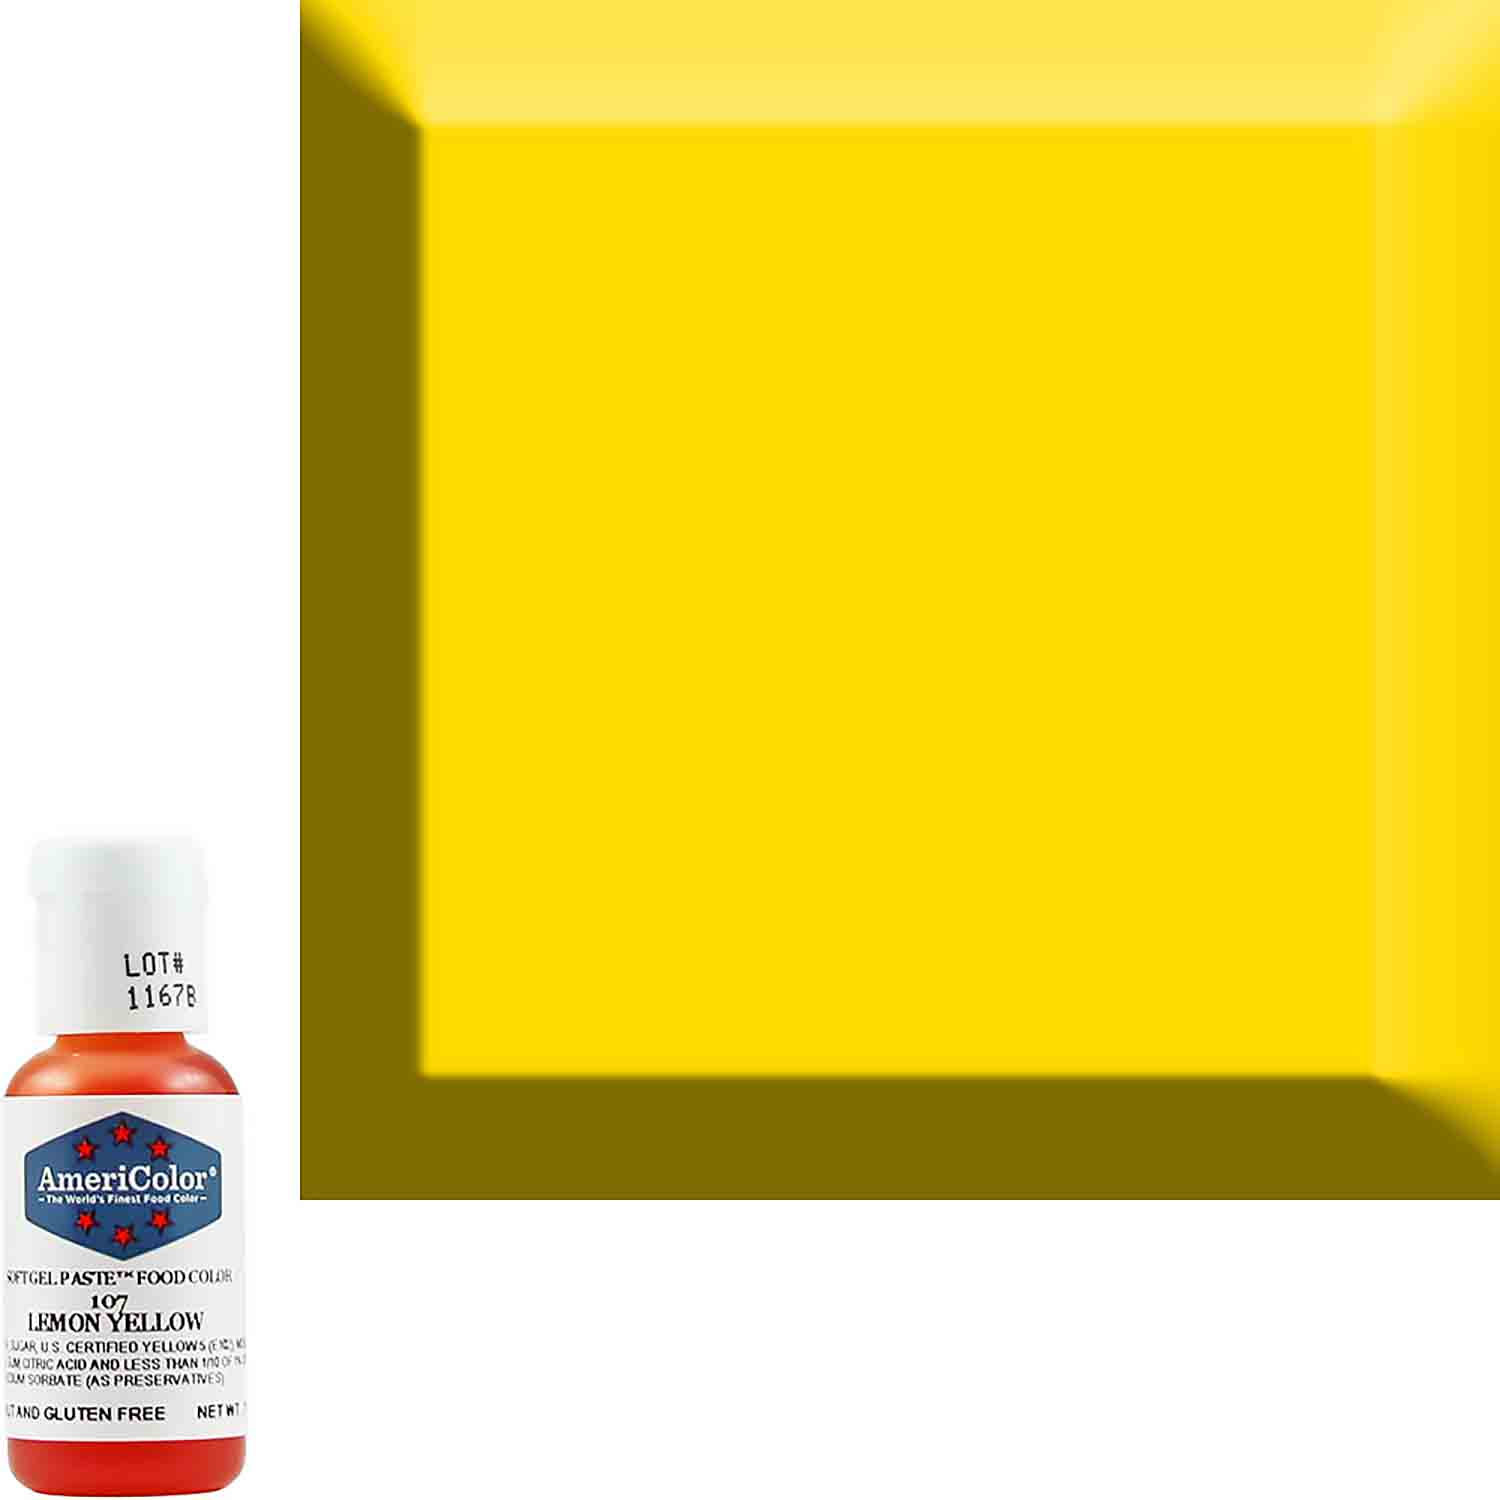 Lemon Yellow Americolor® Soft Gel Paste Food Color (Old # 41-8007)